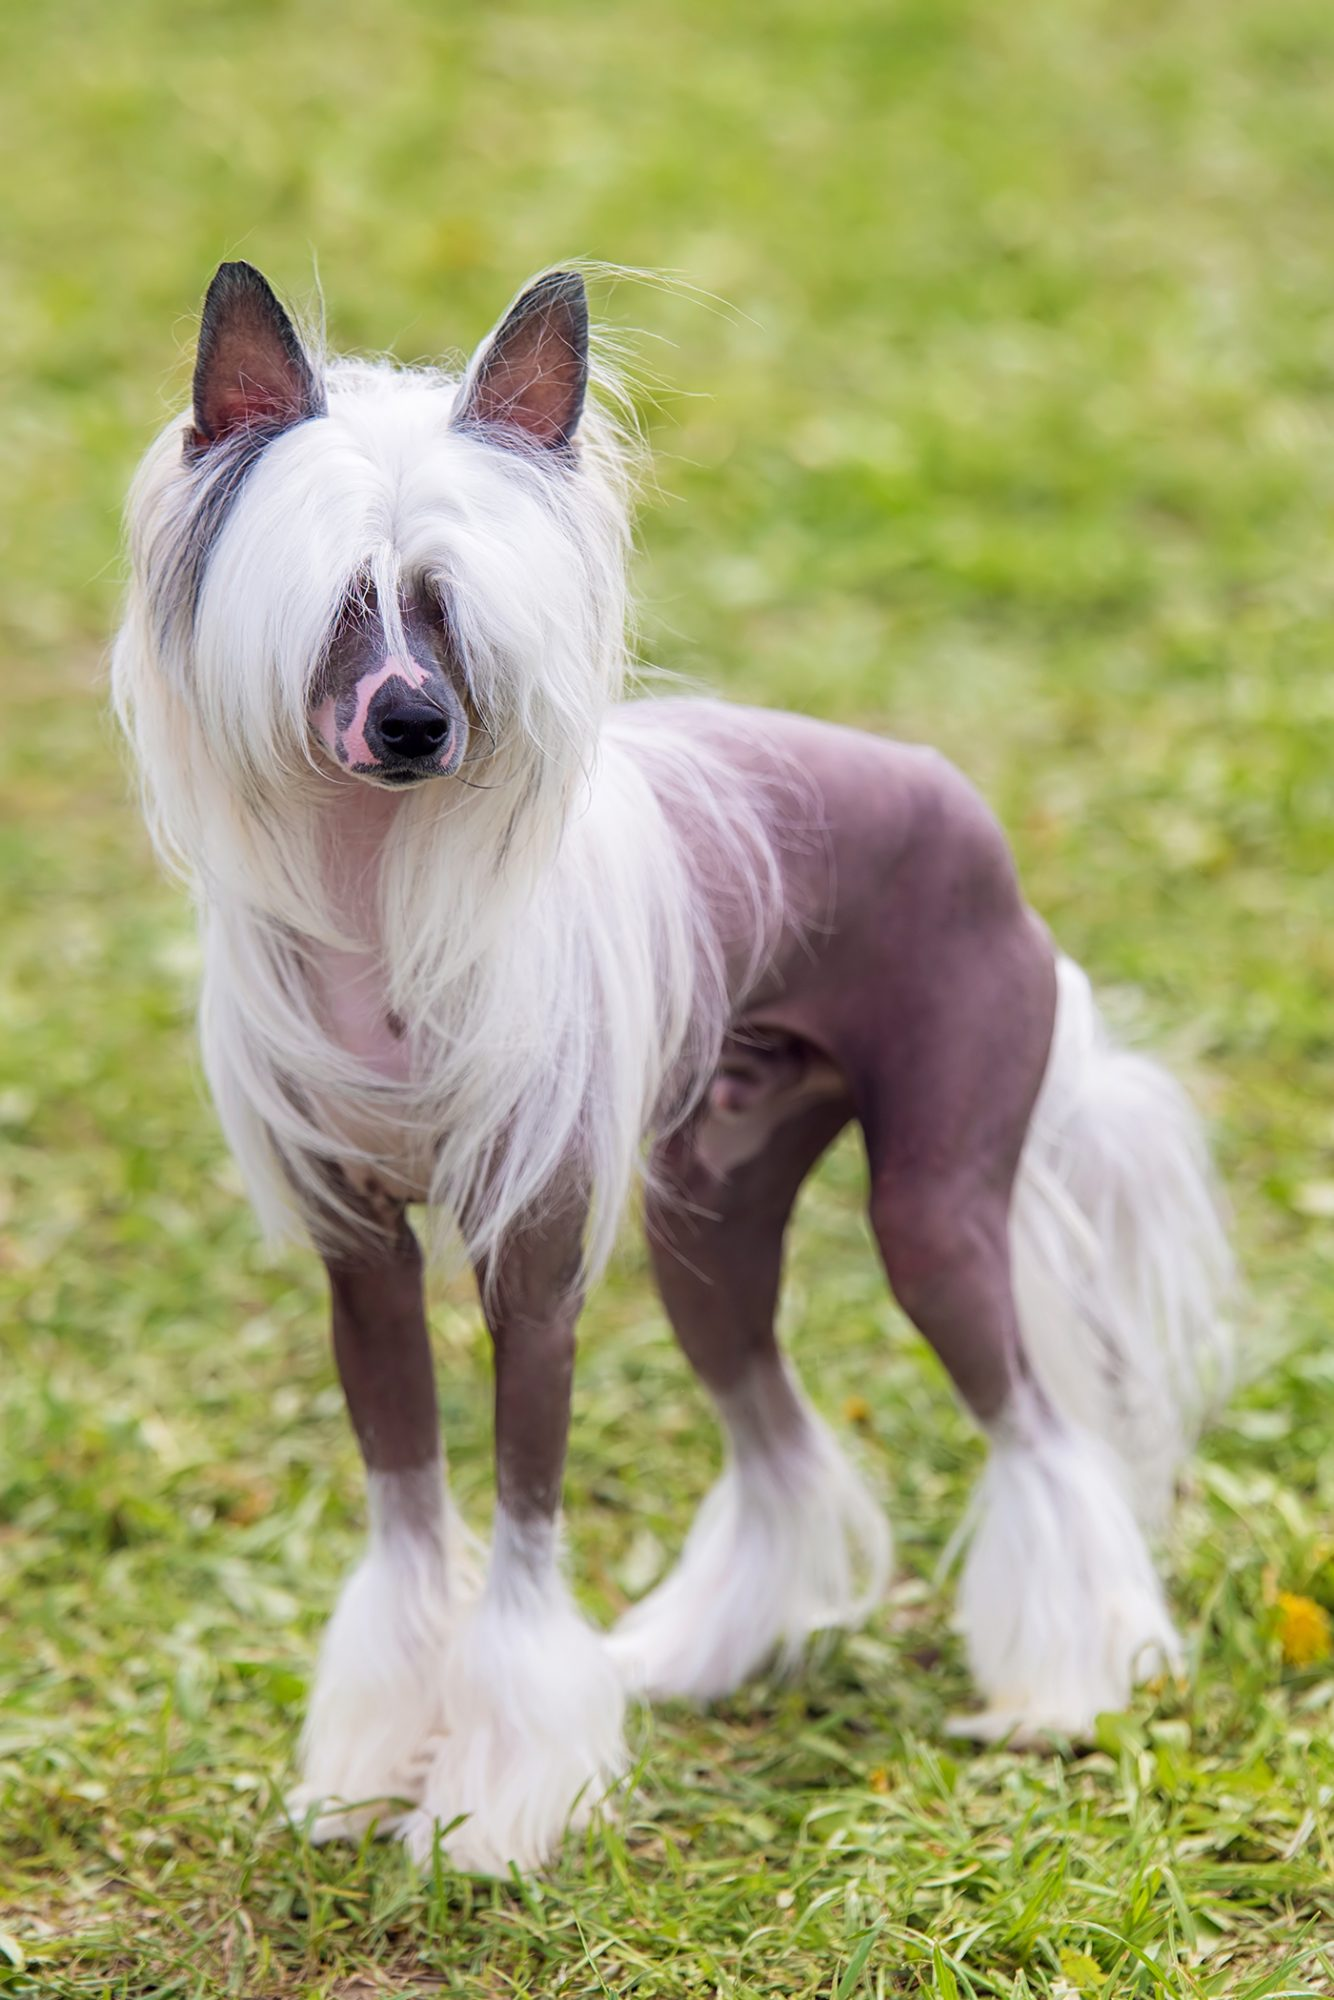 Chinese Crested dog stands on grass